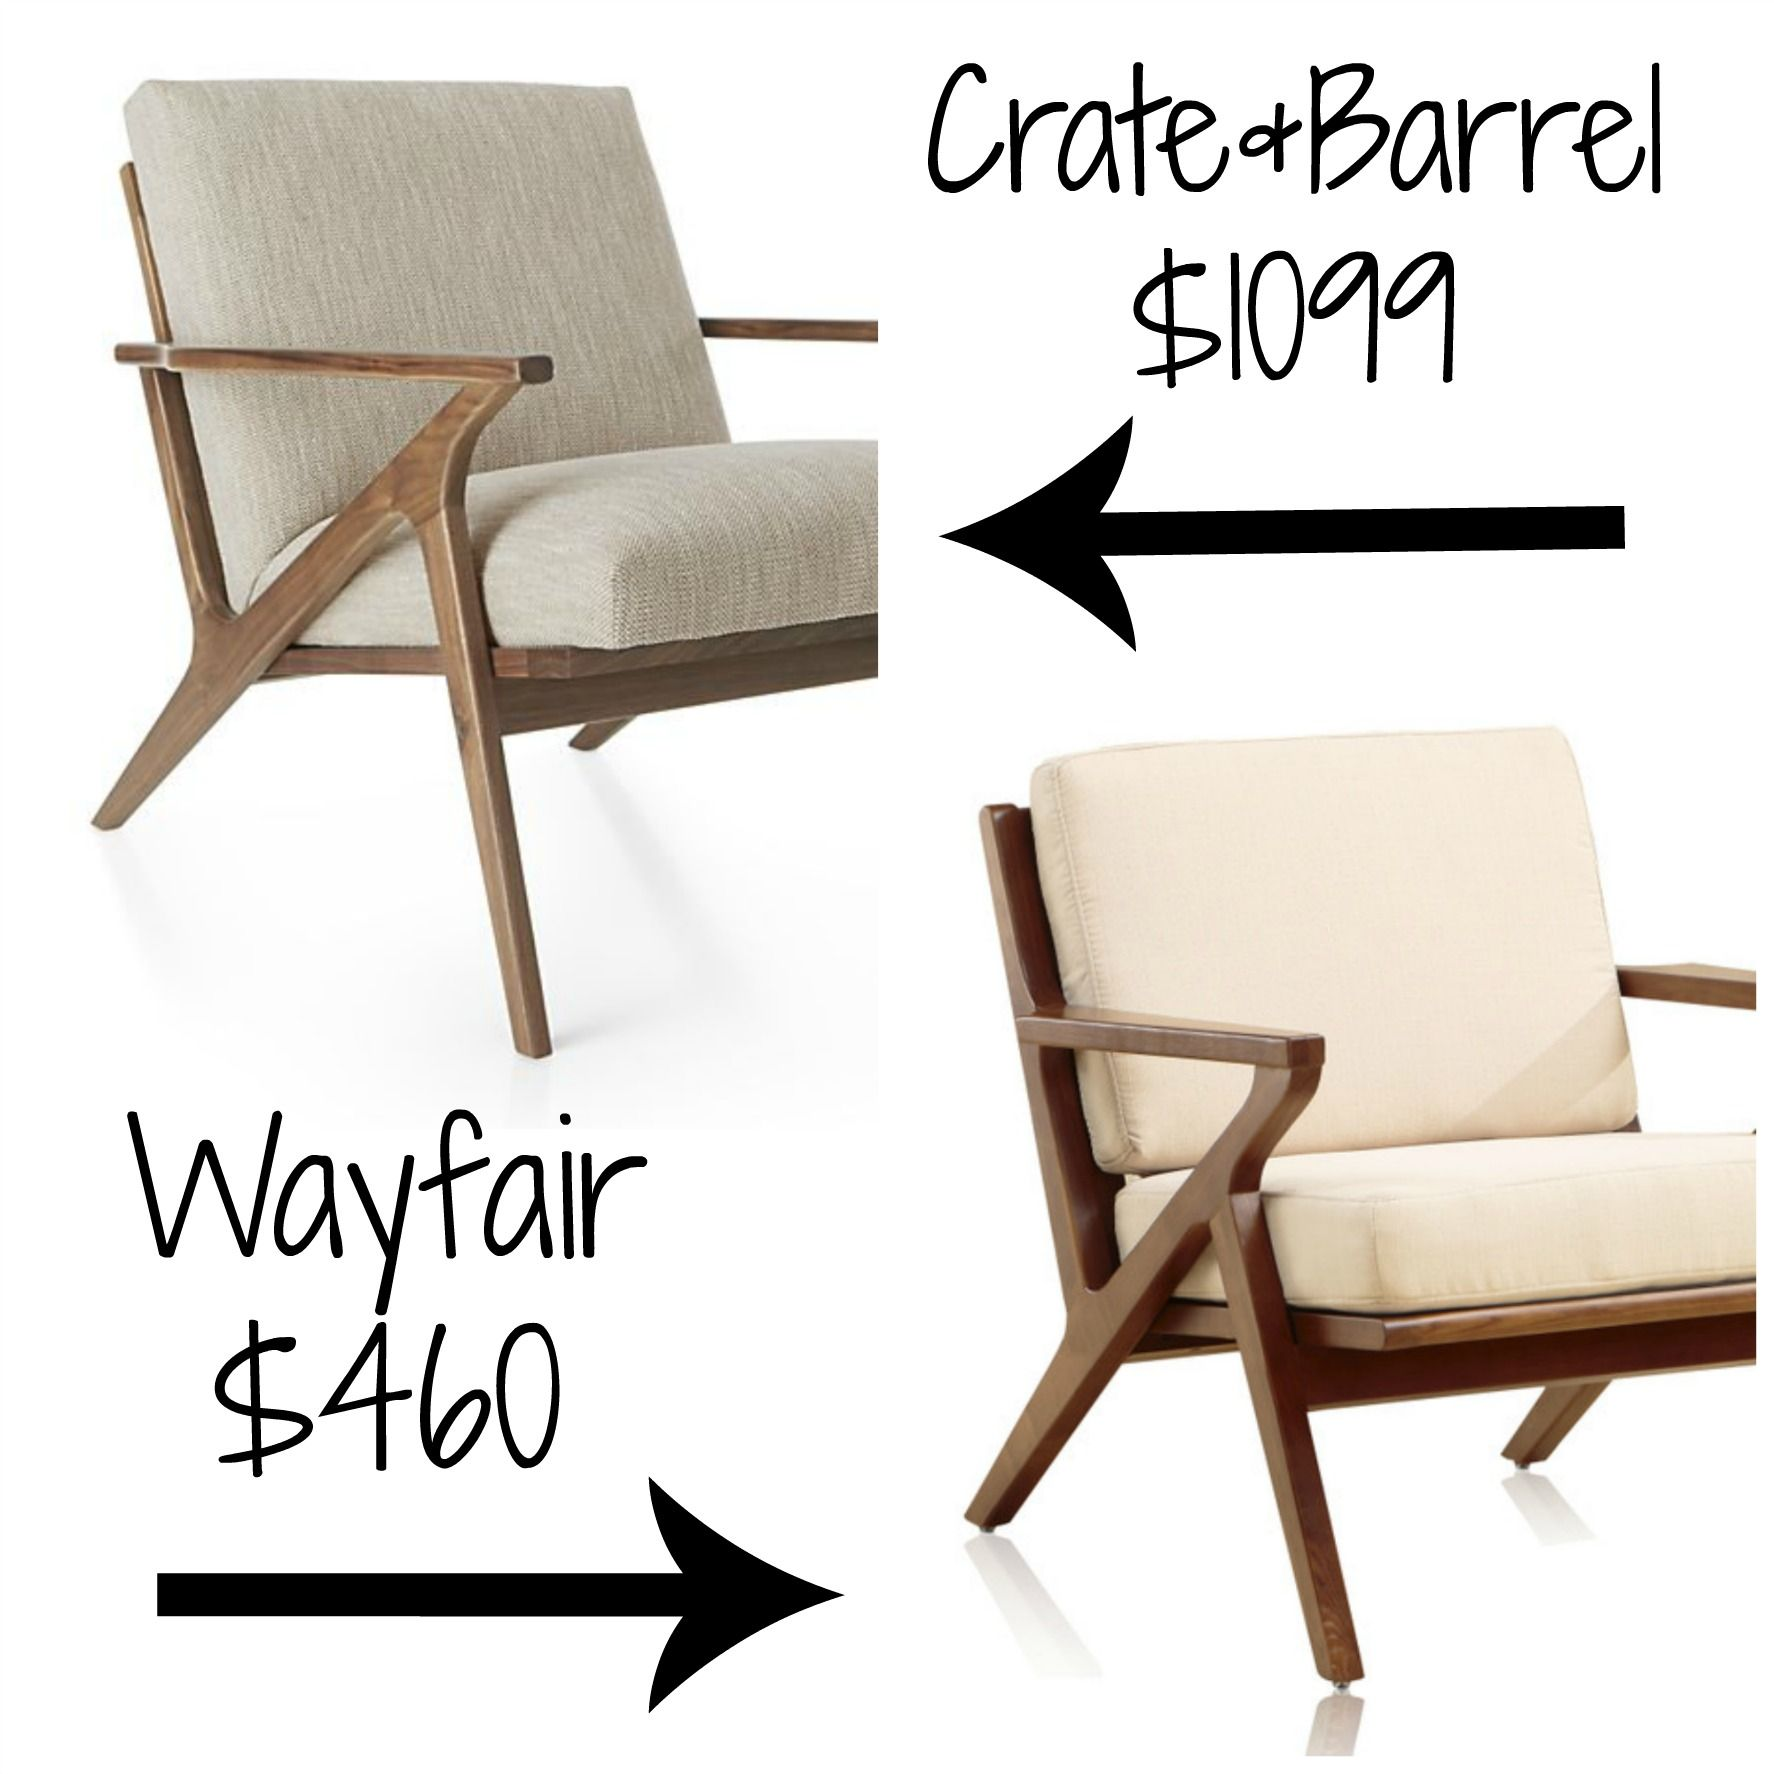 Stupendous Pin By Decor Look Alikes On Crate And Barrel Look Alikes In Gmtry Best Dining Table And Chair Ideas Images Gmtryco